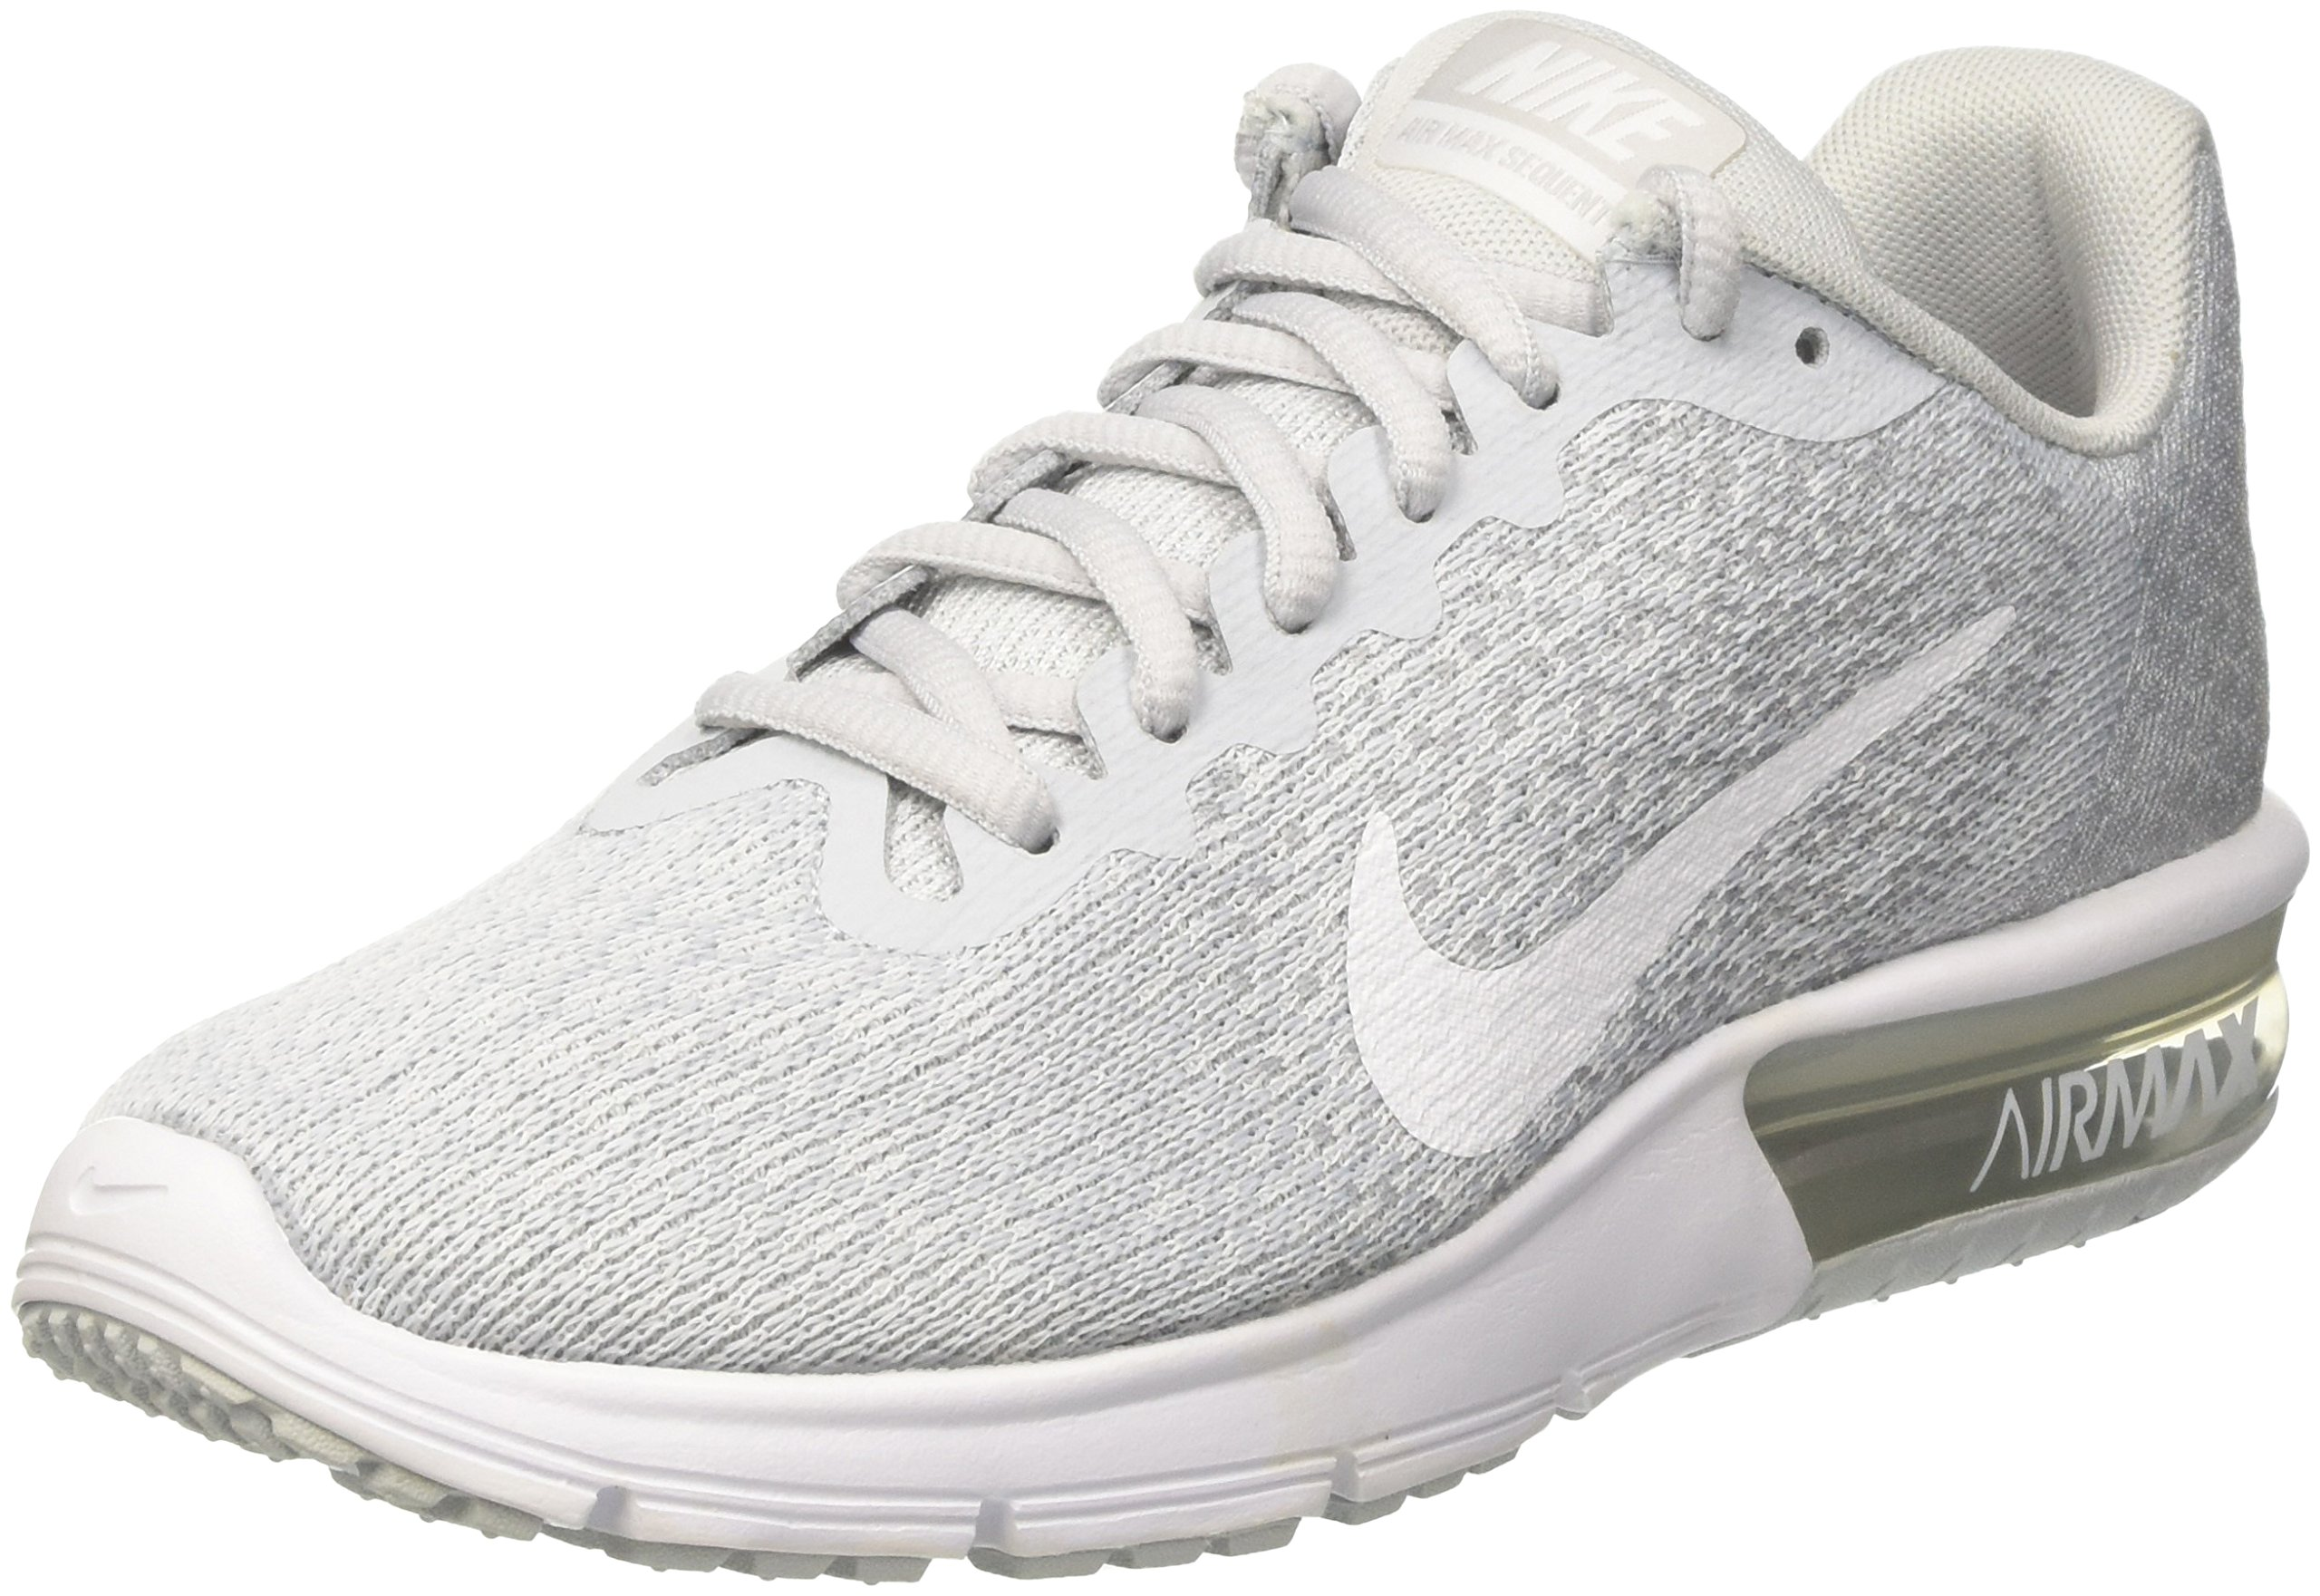 52e161a9725 Galleon - Nike Air Max Sequent 2 Pure Platinum White Wolf Grey Women s  Running Shoes Size 7